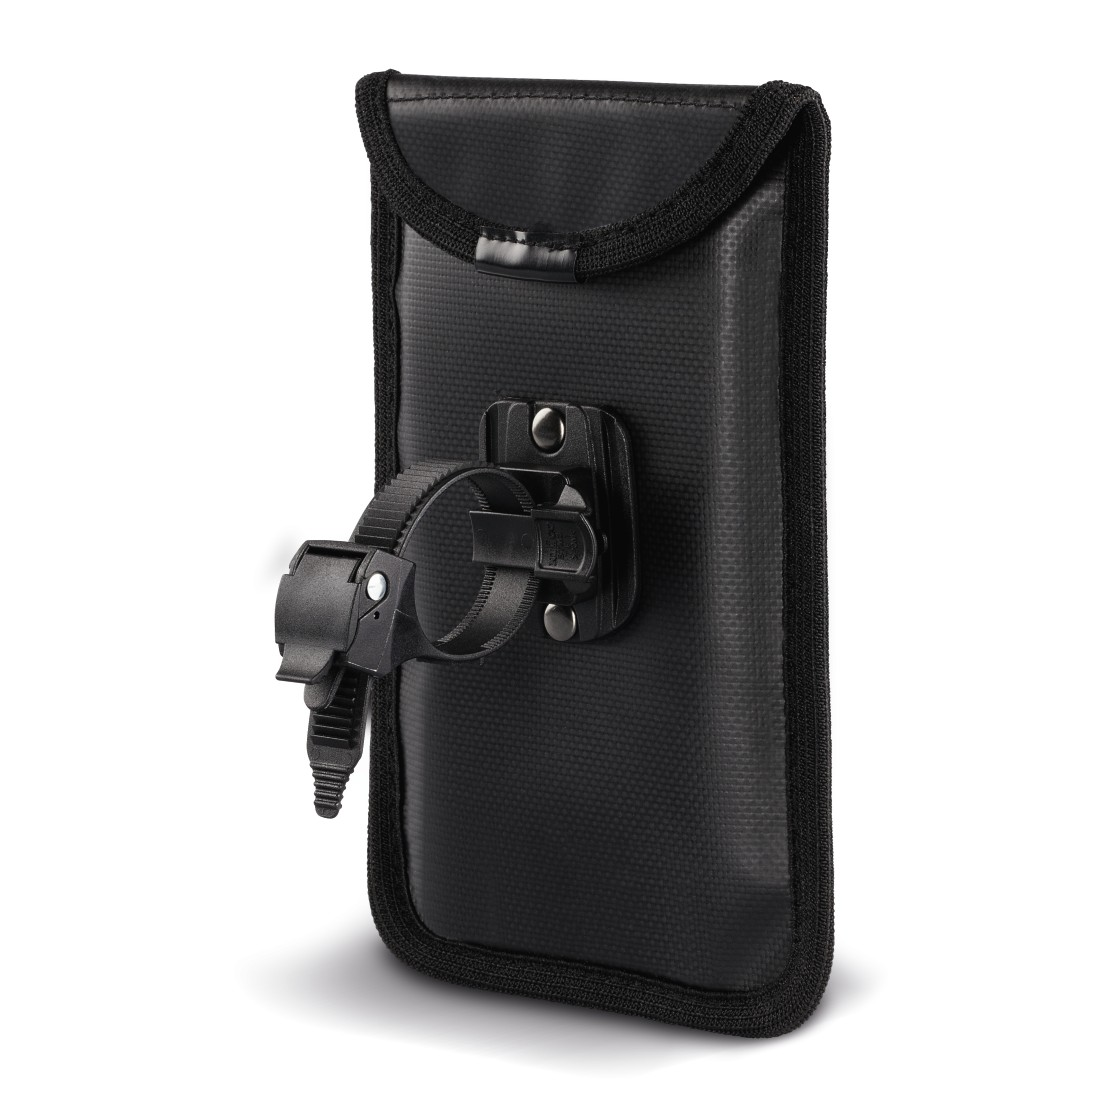 abx2 High-Res Image 2 - Hama, Univer. Smartphone Bike Holder Bag for devices with width from 7 to 13.5 cm